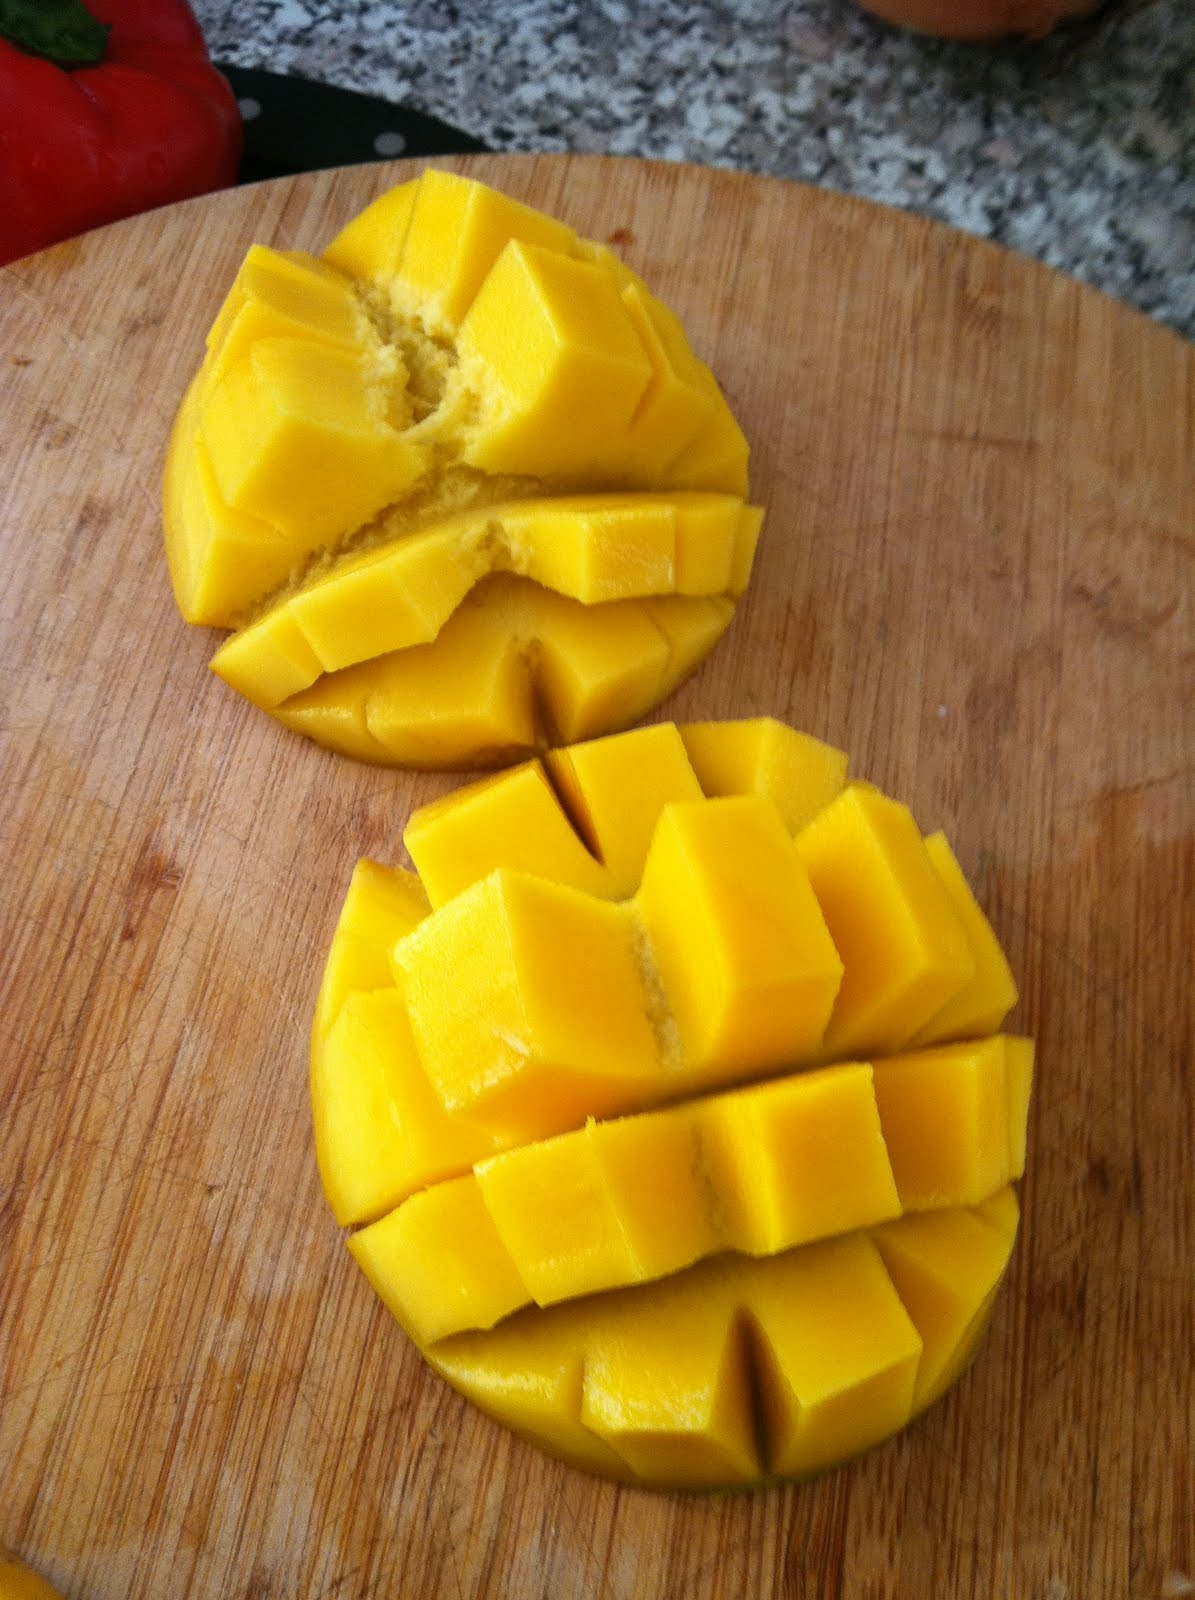 Cutting A Mango Can Be A Messy Adventure When I Was Going To Grad School In